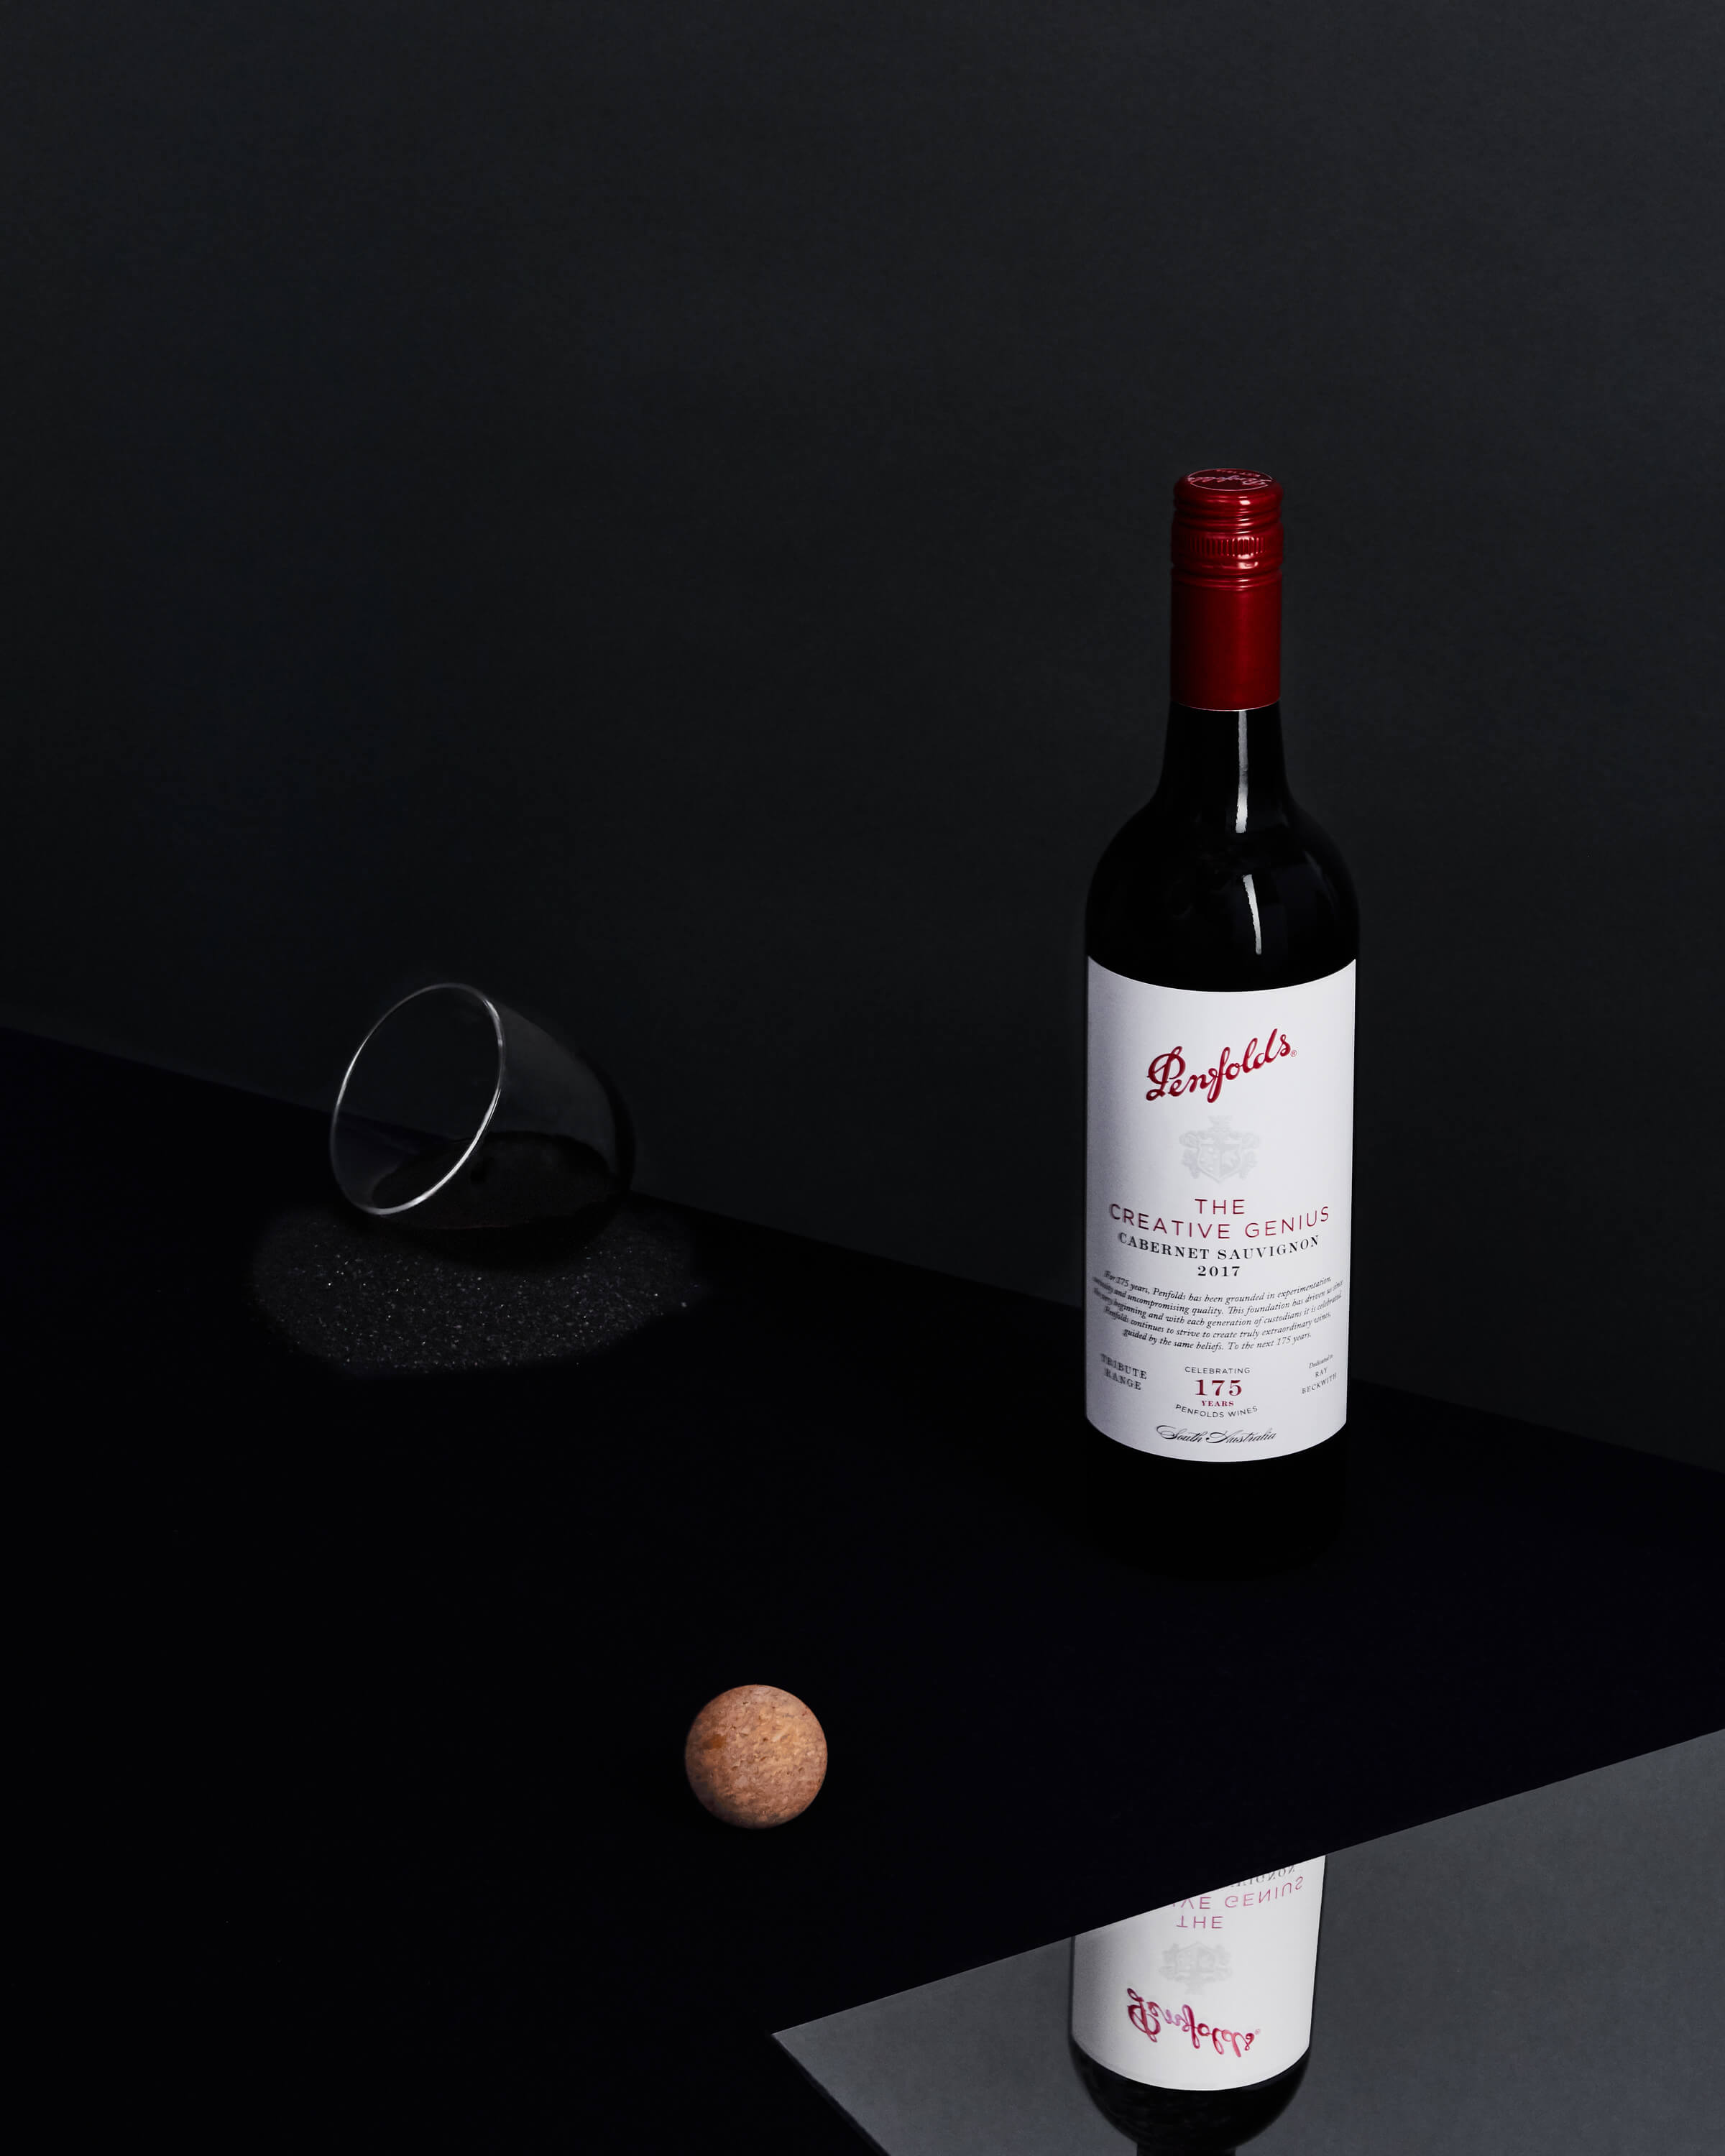 penfolds-wines-the-tailored-man-175-years-28-march-2019-esteemed-creator